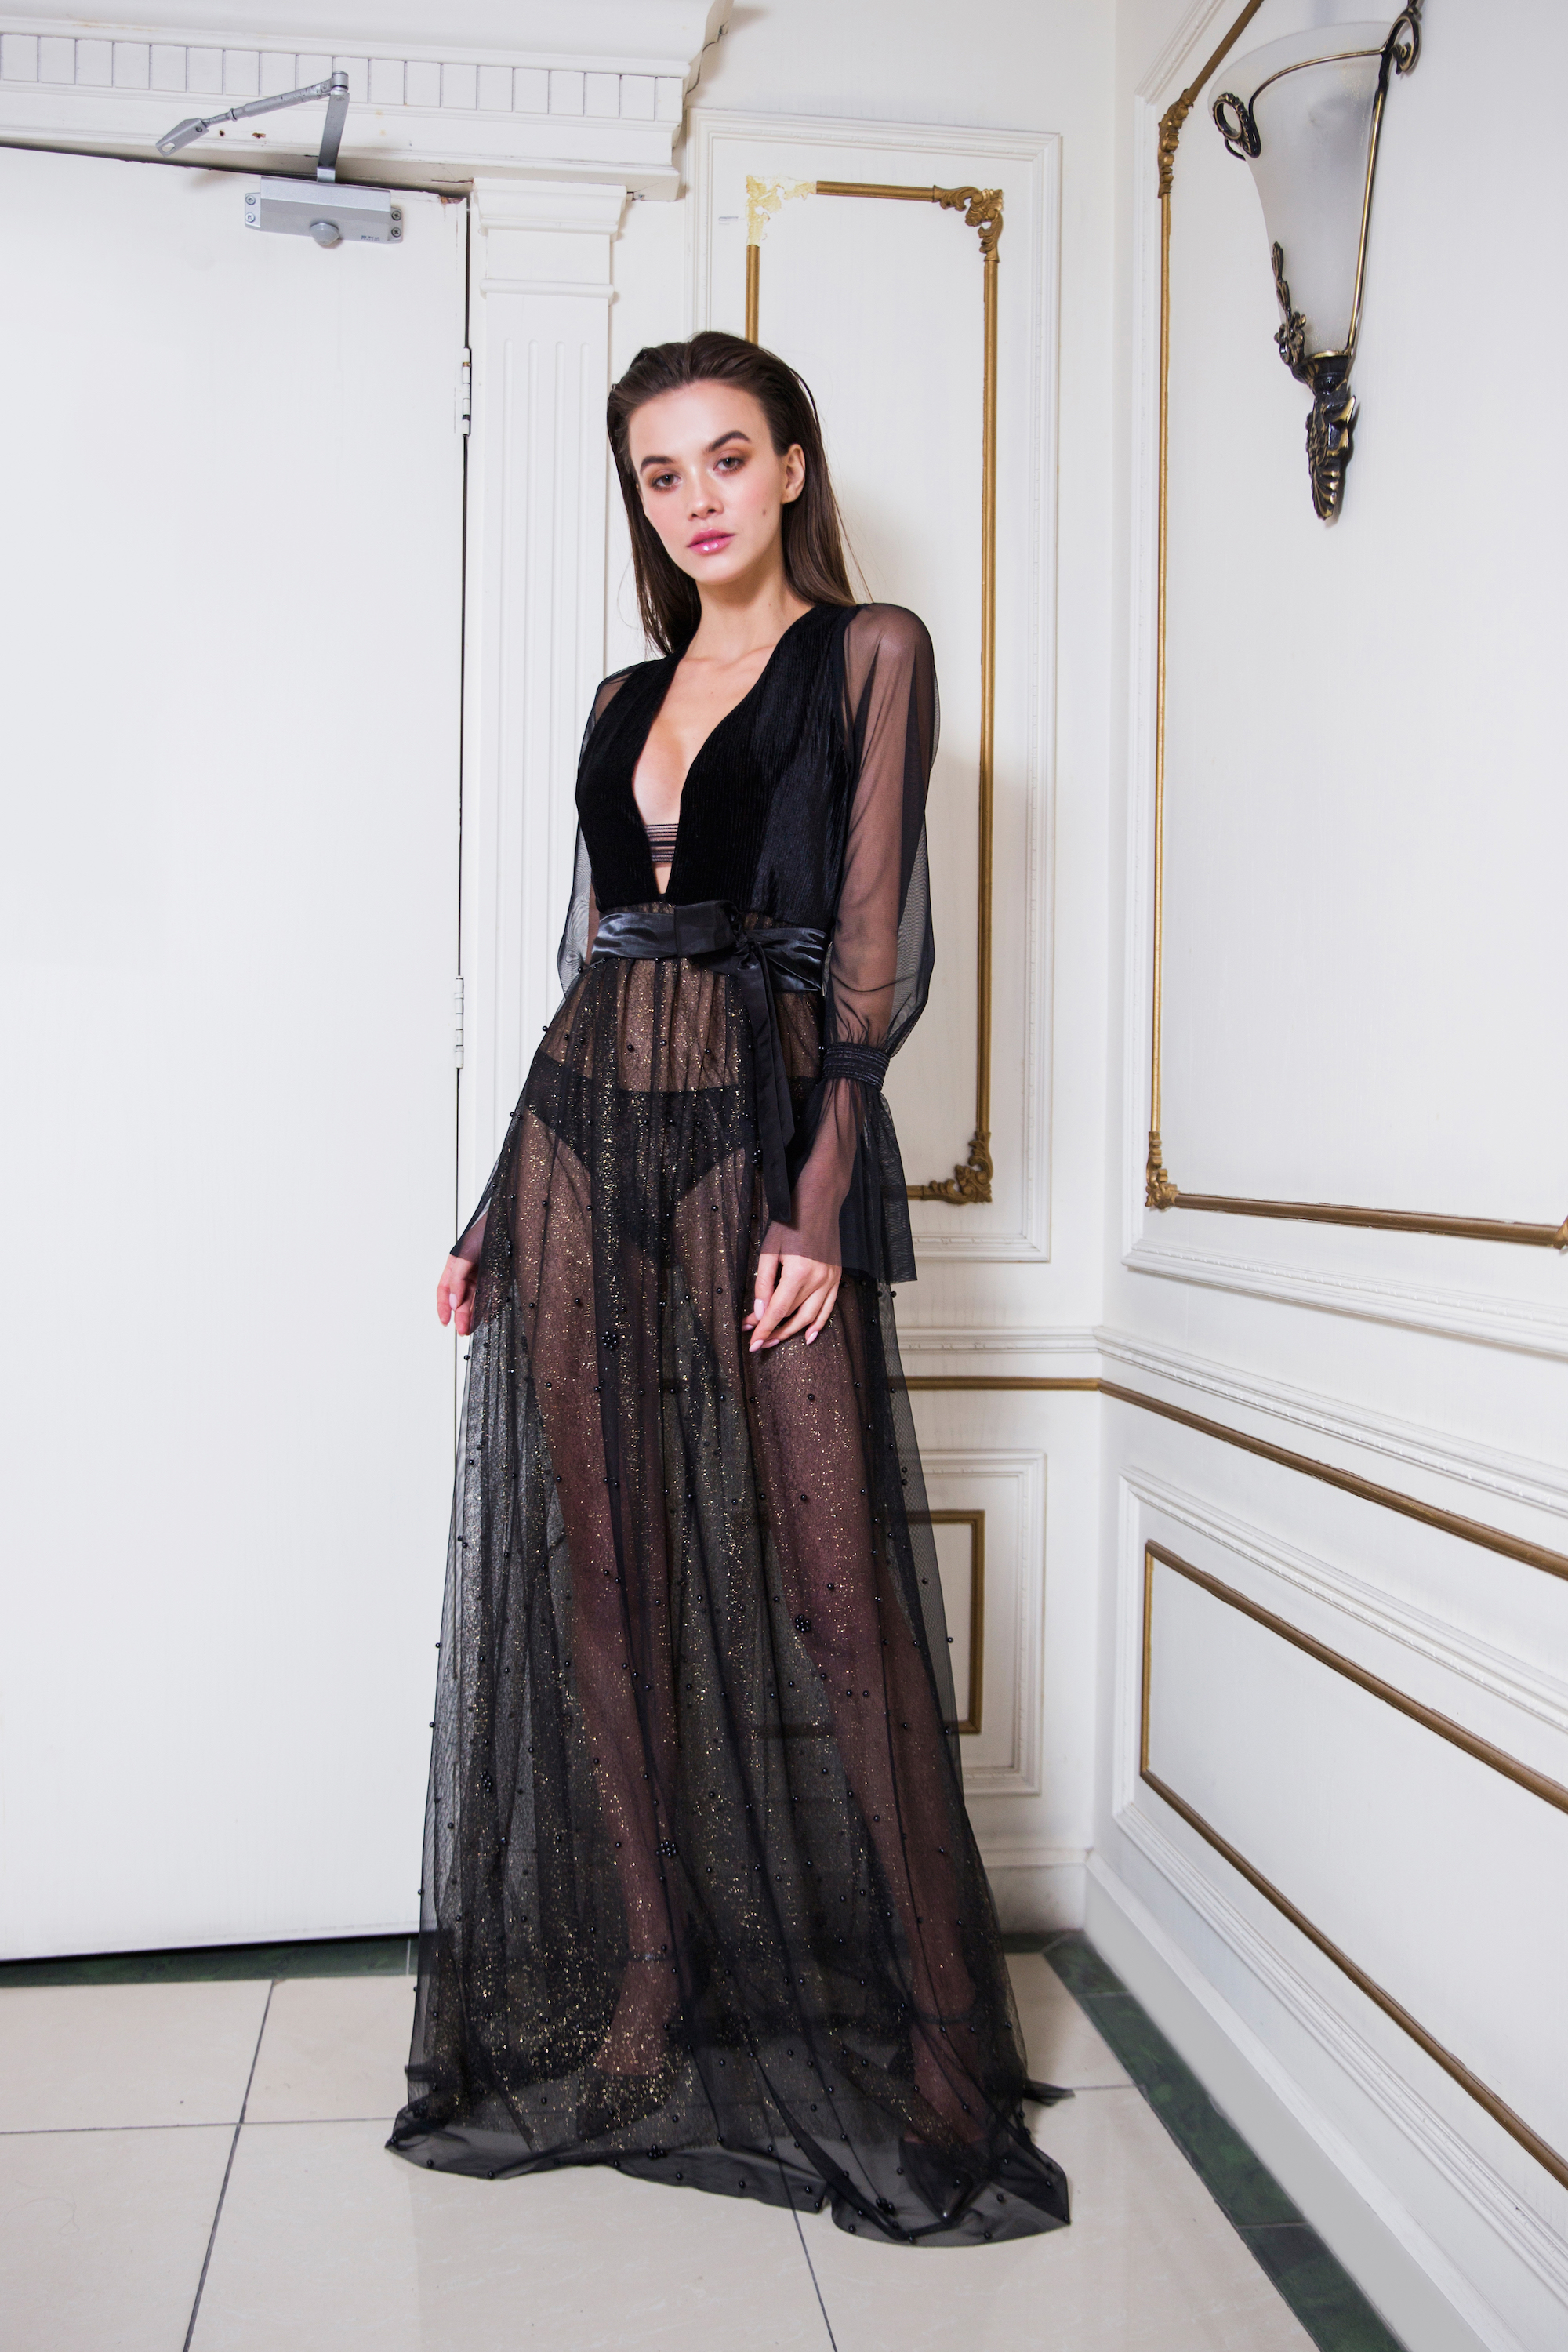 The Valeriya Dress